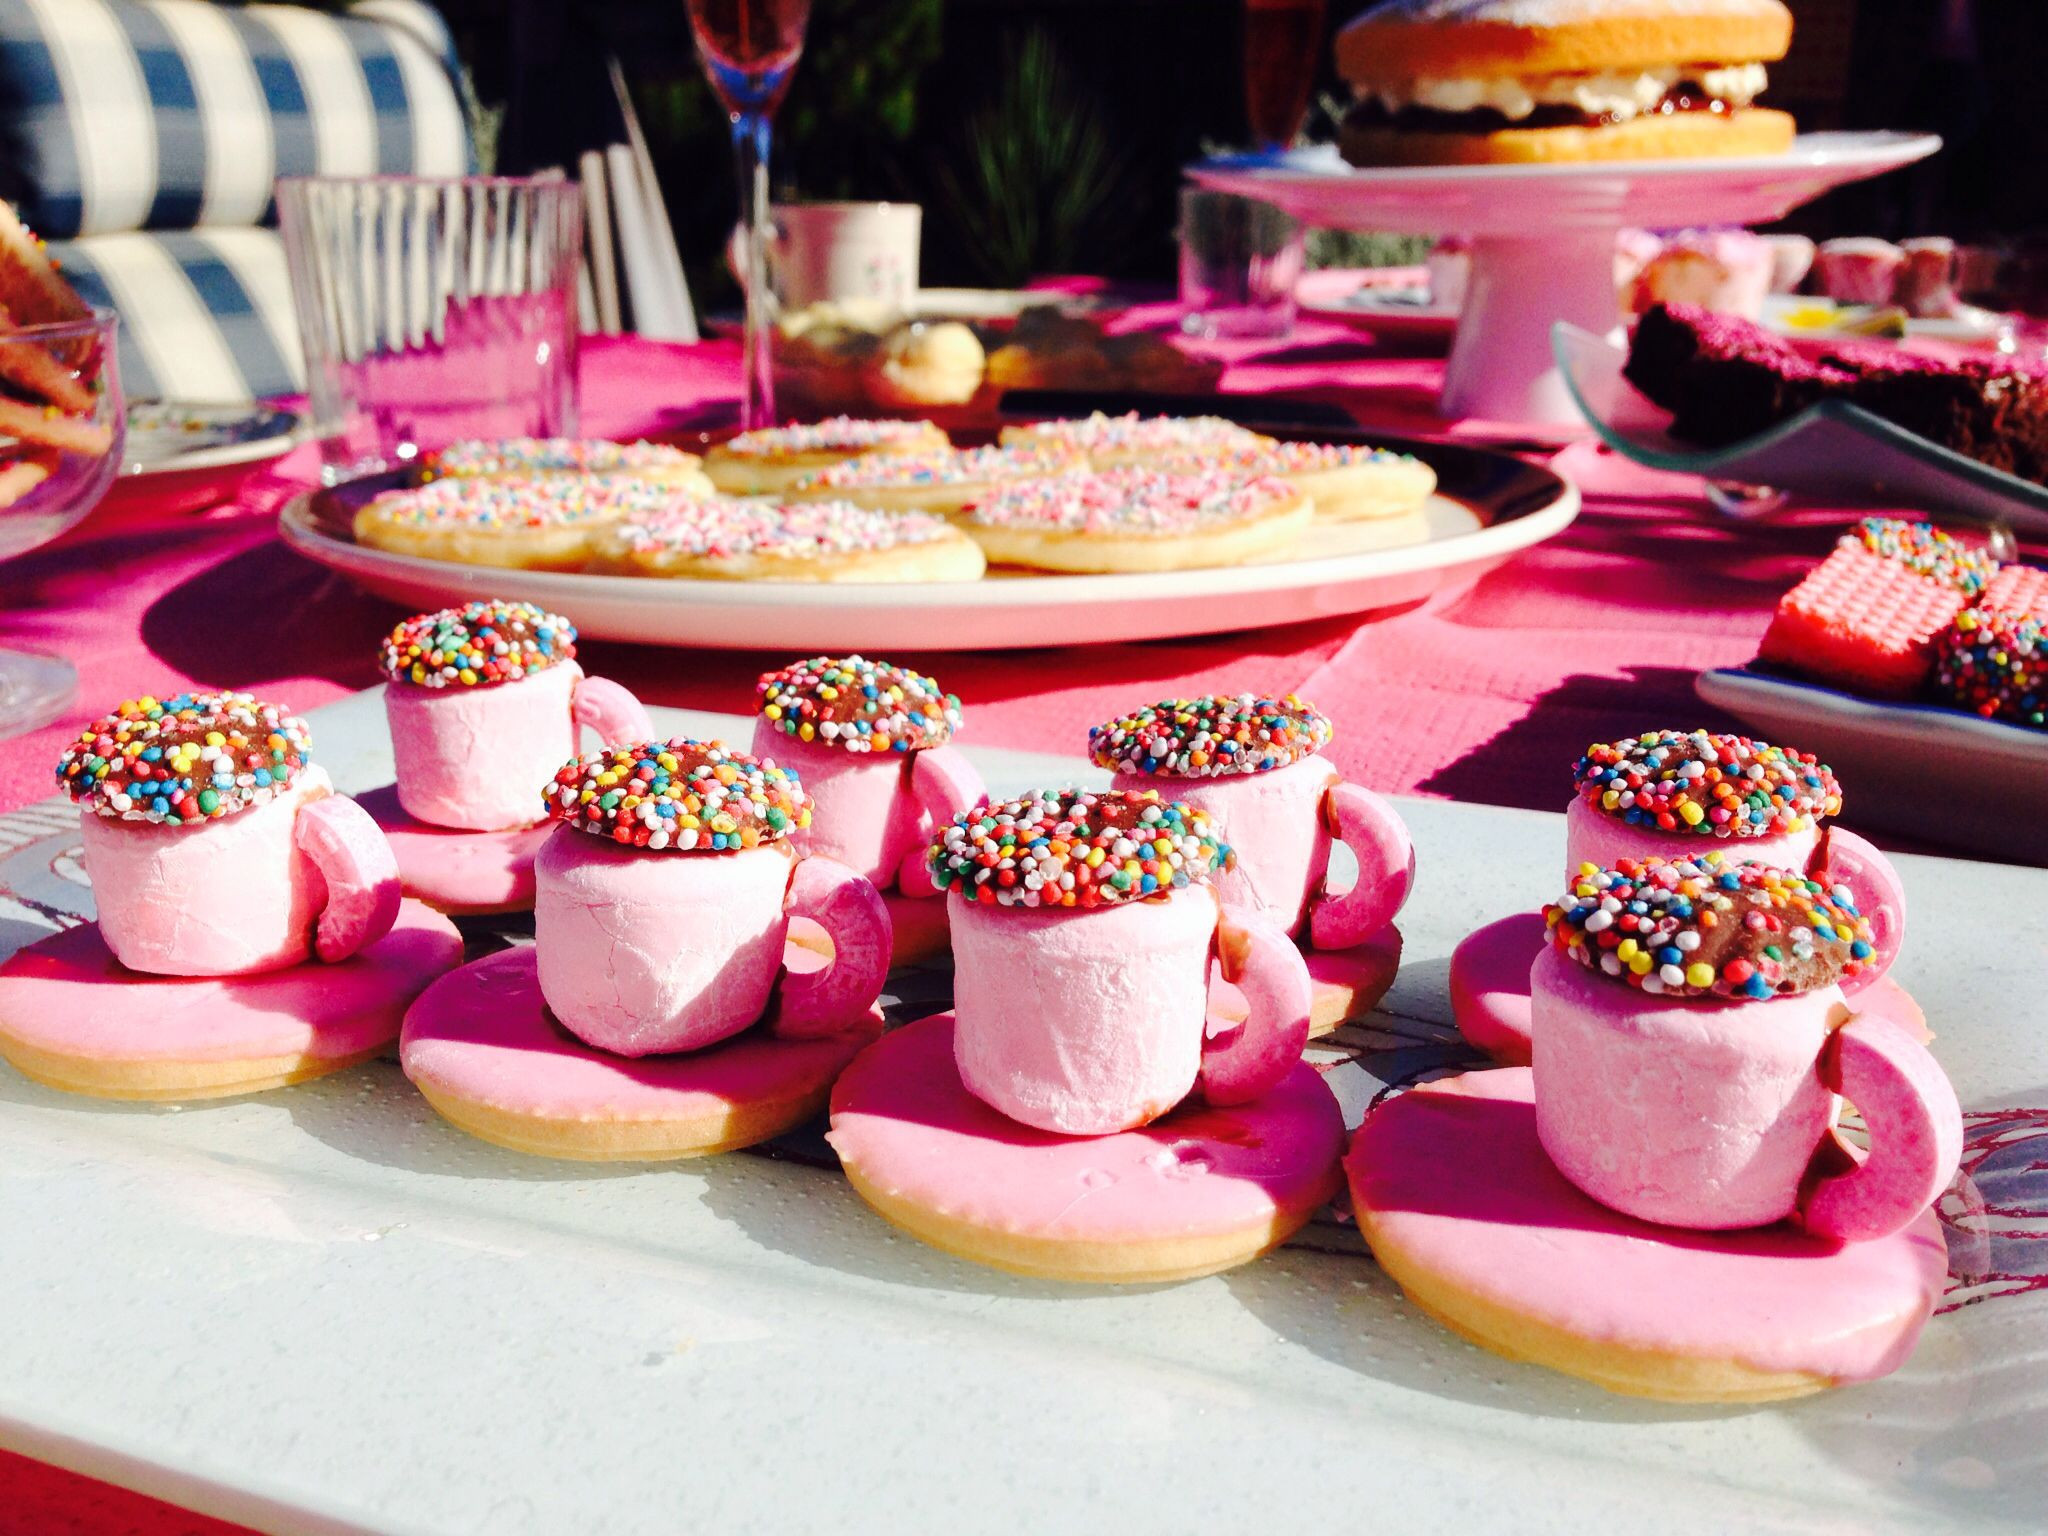 Pink Party Food Ideas  High tea food ideas pink I know who would love this